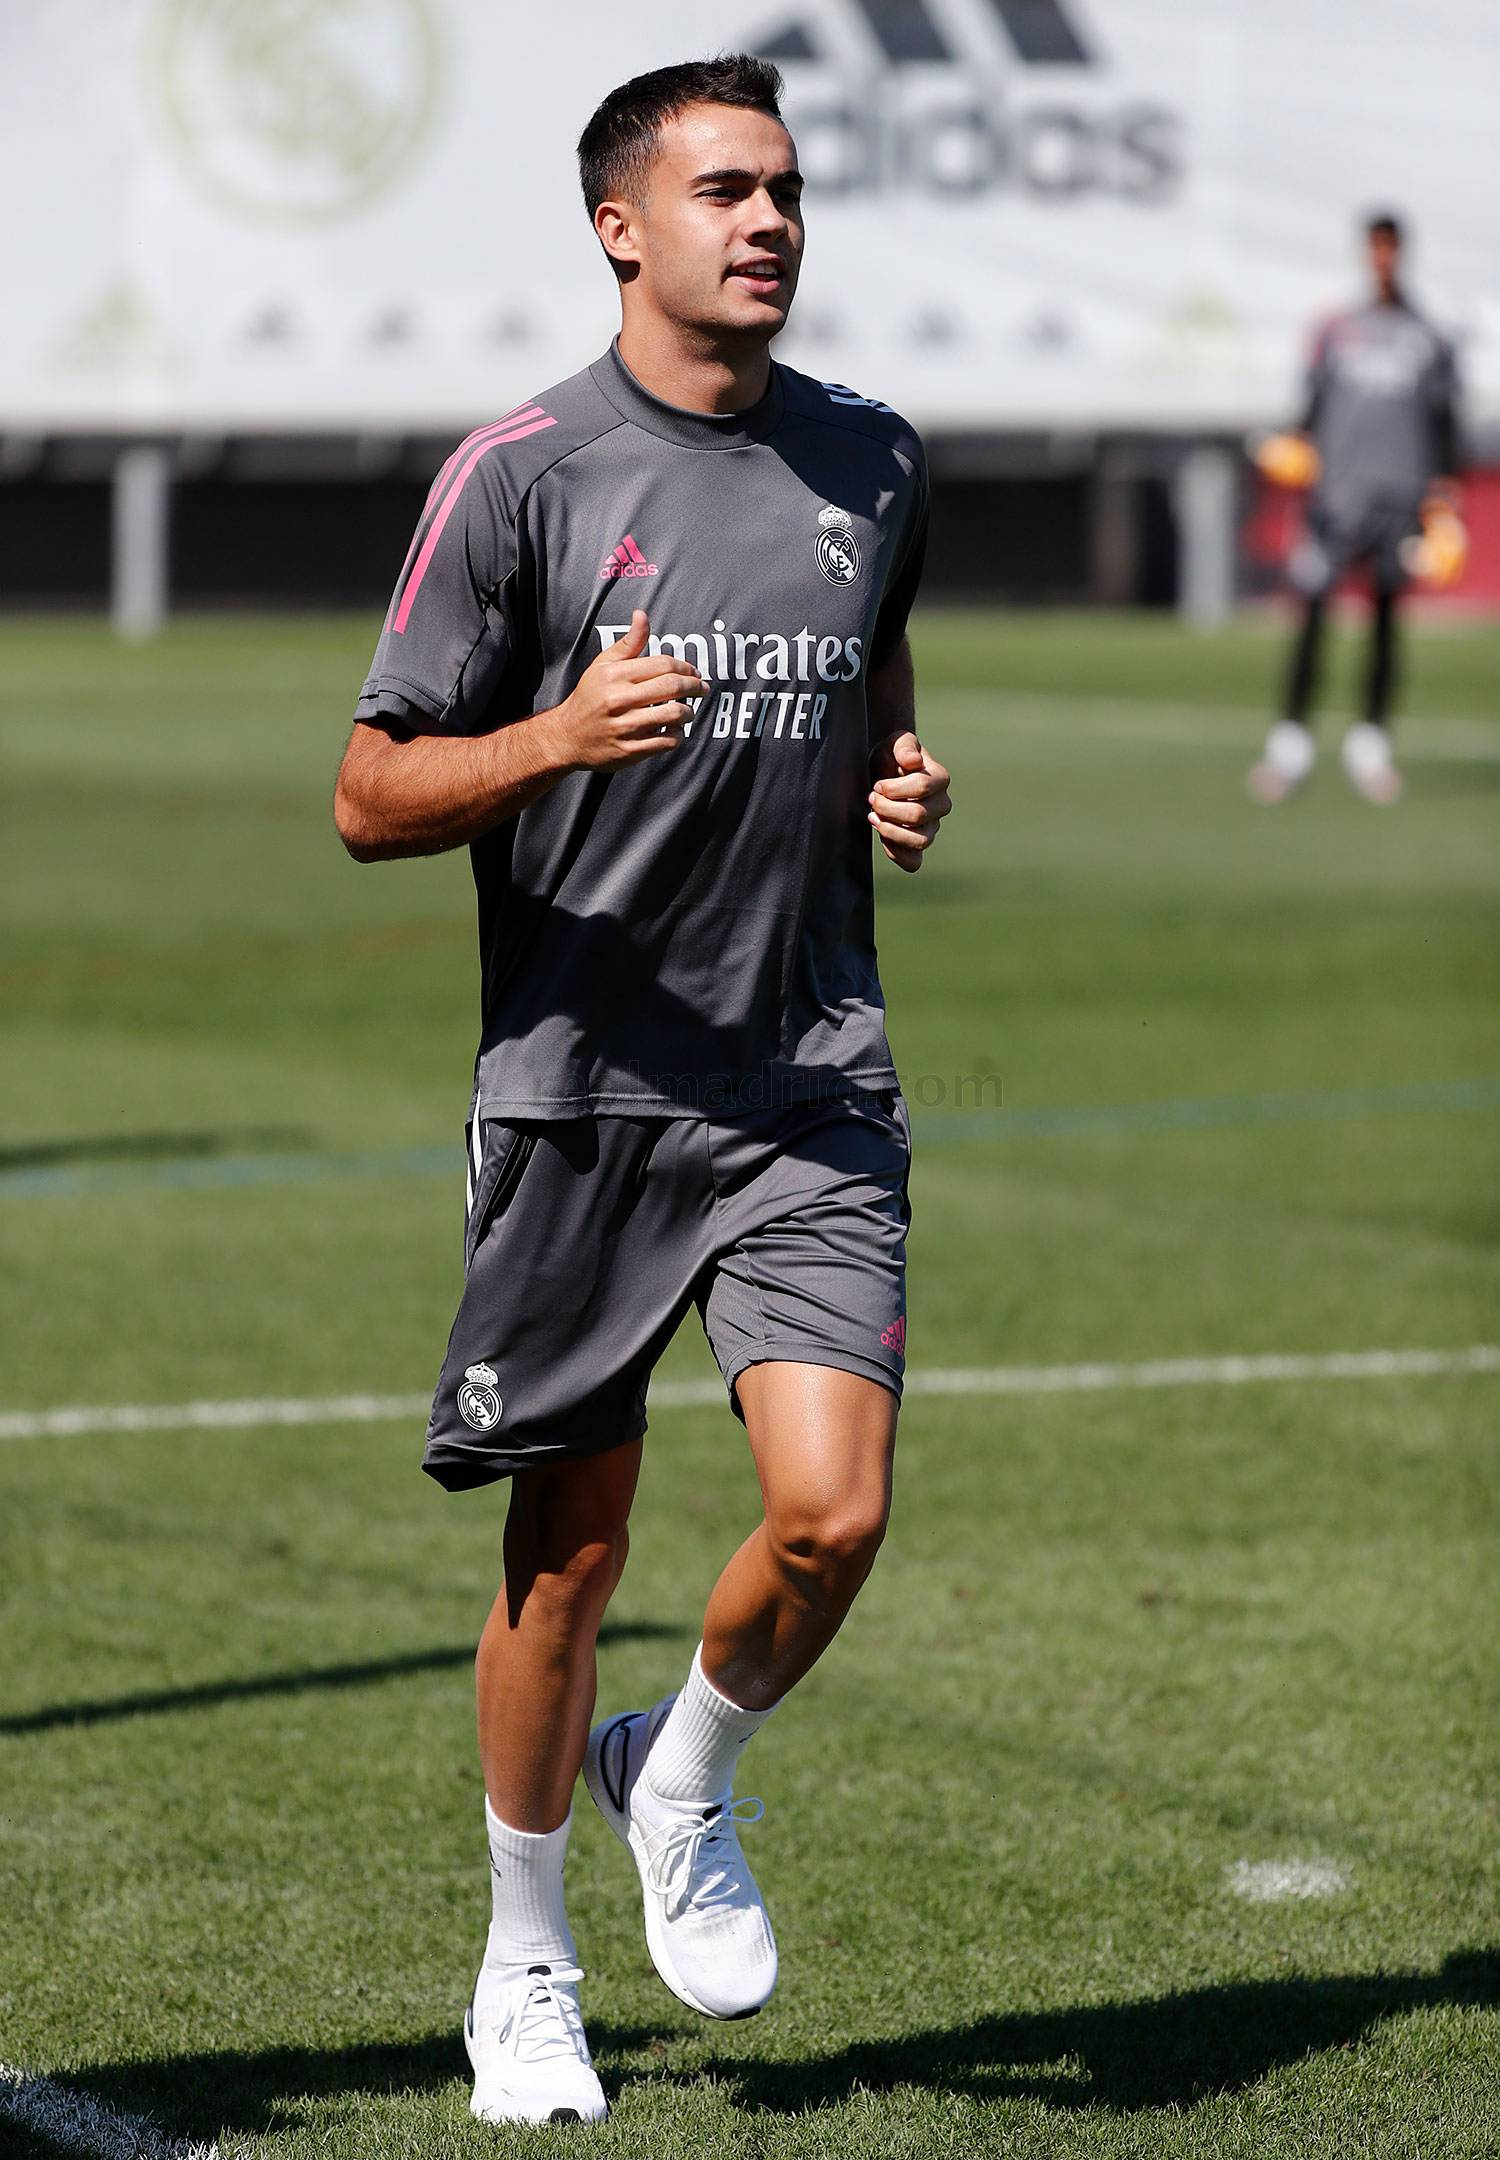 Real Madrid - Entrenamiento del Real Madrid  - 12-09-2020